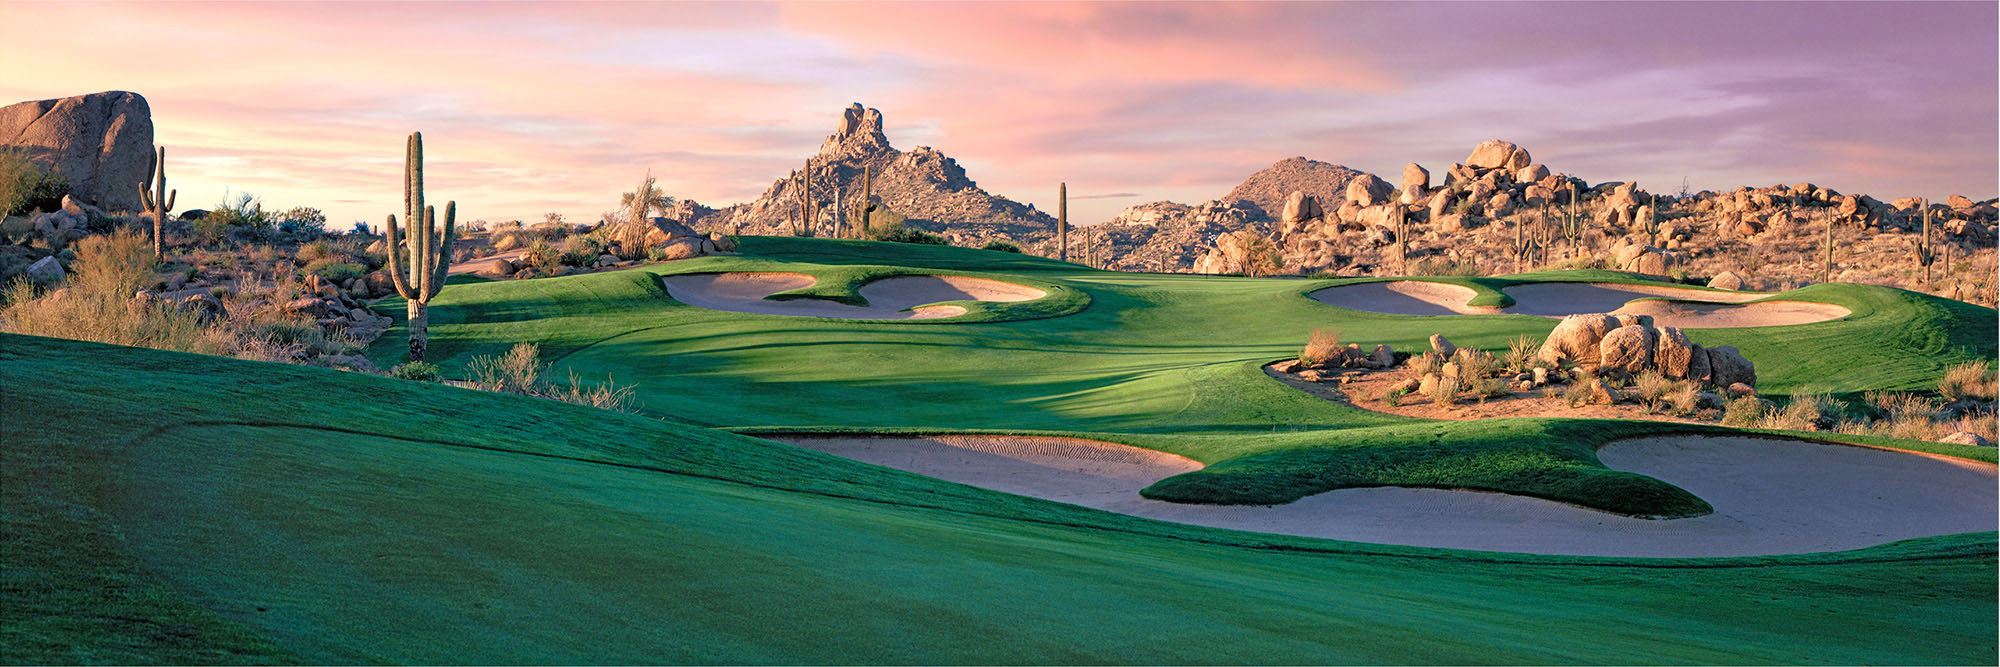 Golf Course Image - Troon North Pinnacle No. 10